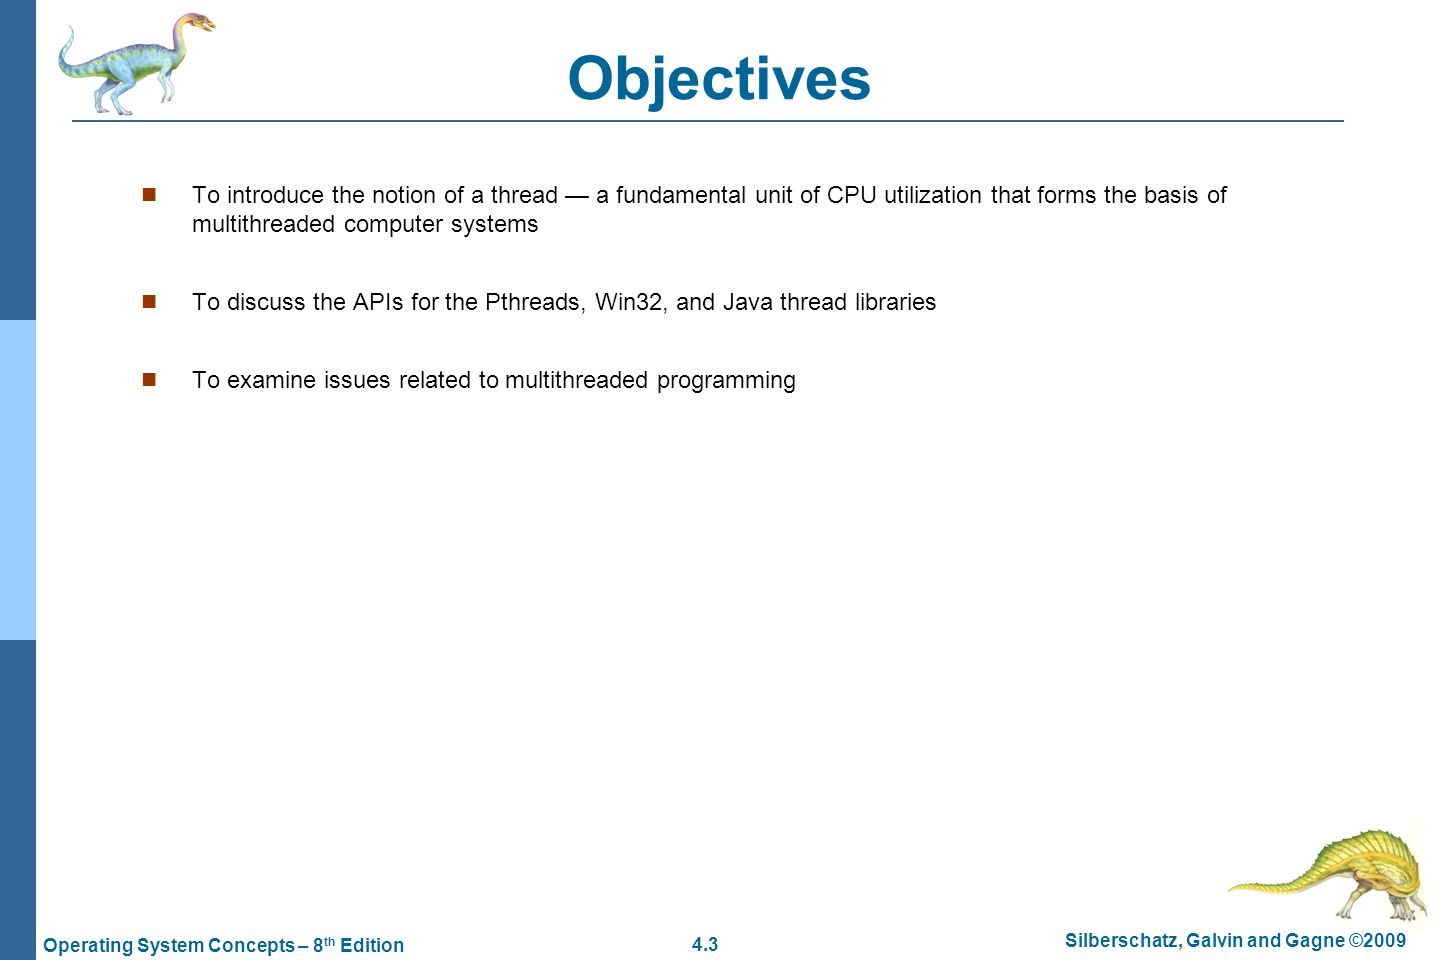 4.3 Silberschatz, Galvin and Gagne ©2009 Operating System Concepts – 8 th Edition Objectives To introduce the notion of a thread — a fundamental unit of CPU utilization that forms the basis of multithreaded computer systems To discuss the APIs for the Pthreads, Win32, and Java thread libraries To examine issues related to multithreaded programming